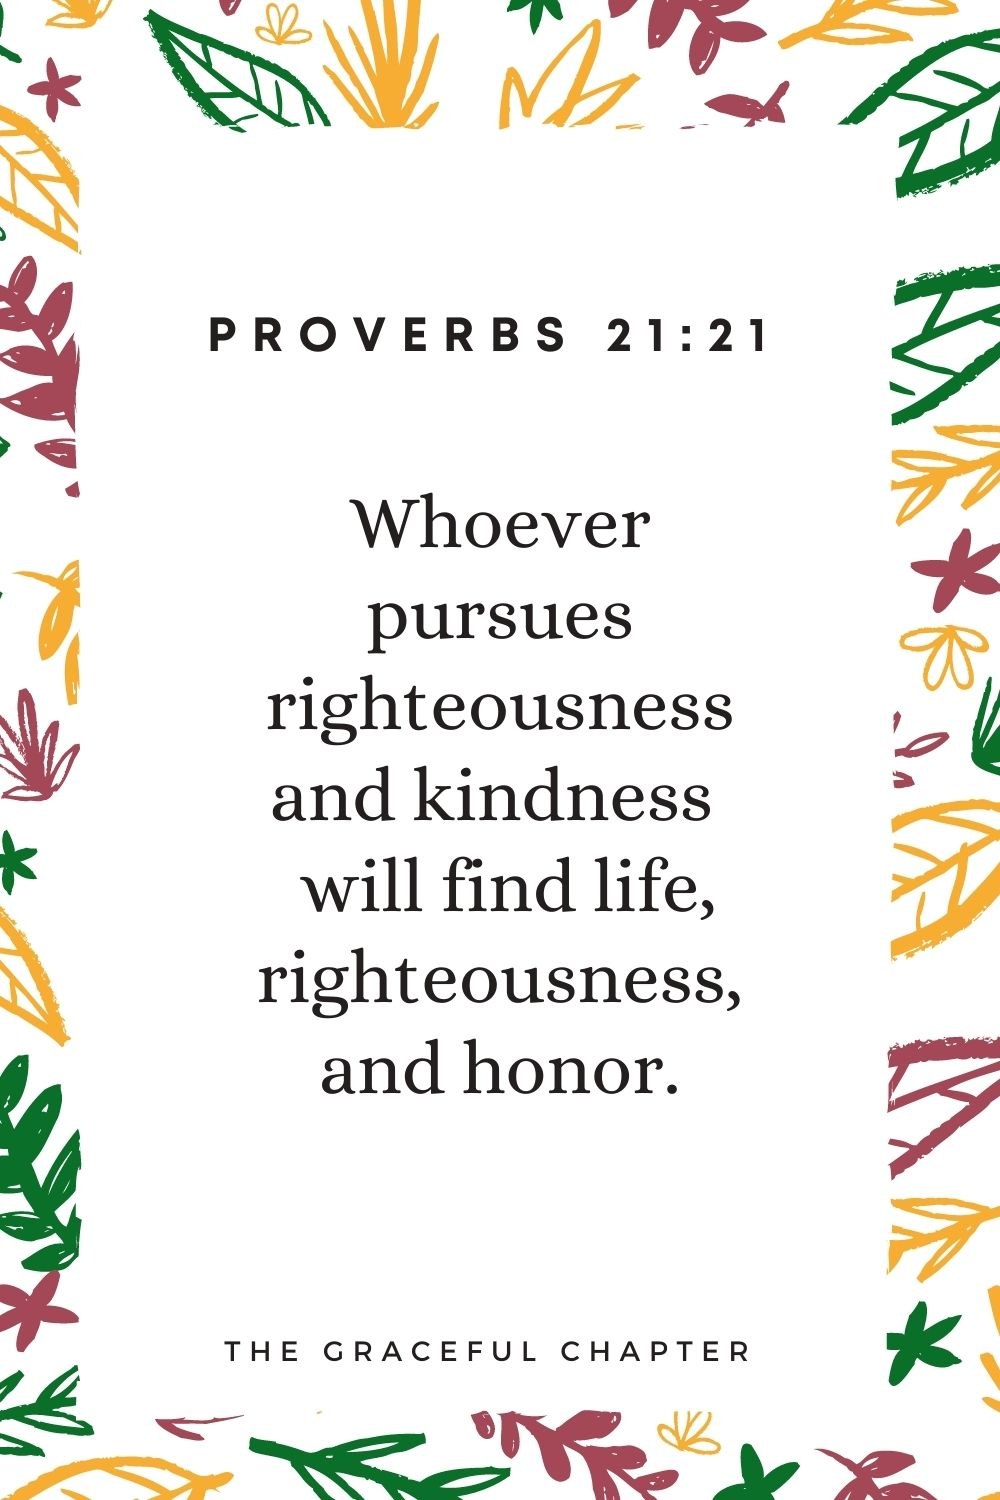 Whoever pursues righteousness and kindness  will find life, righteousness, and honor. Proverbs 21:21